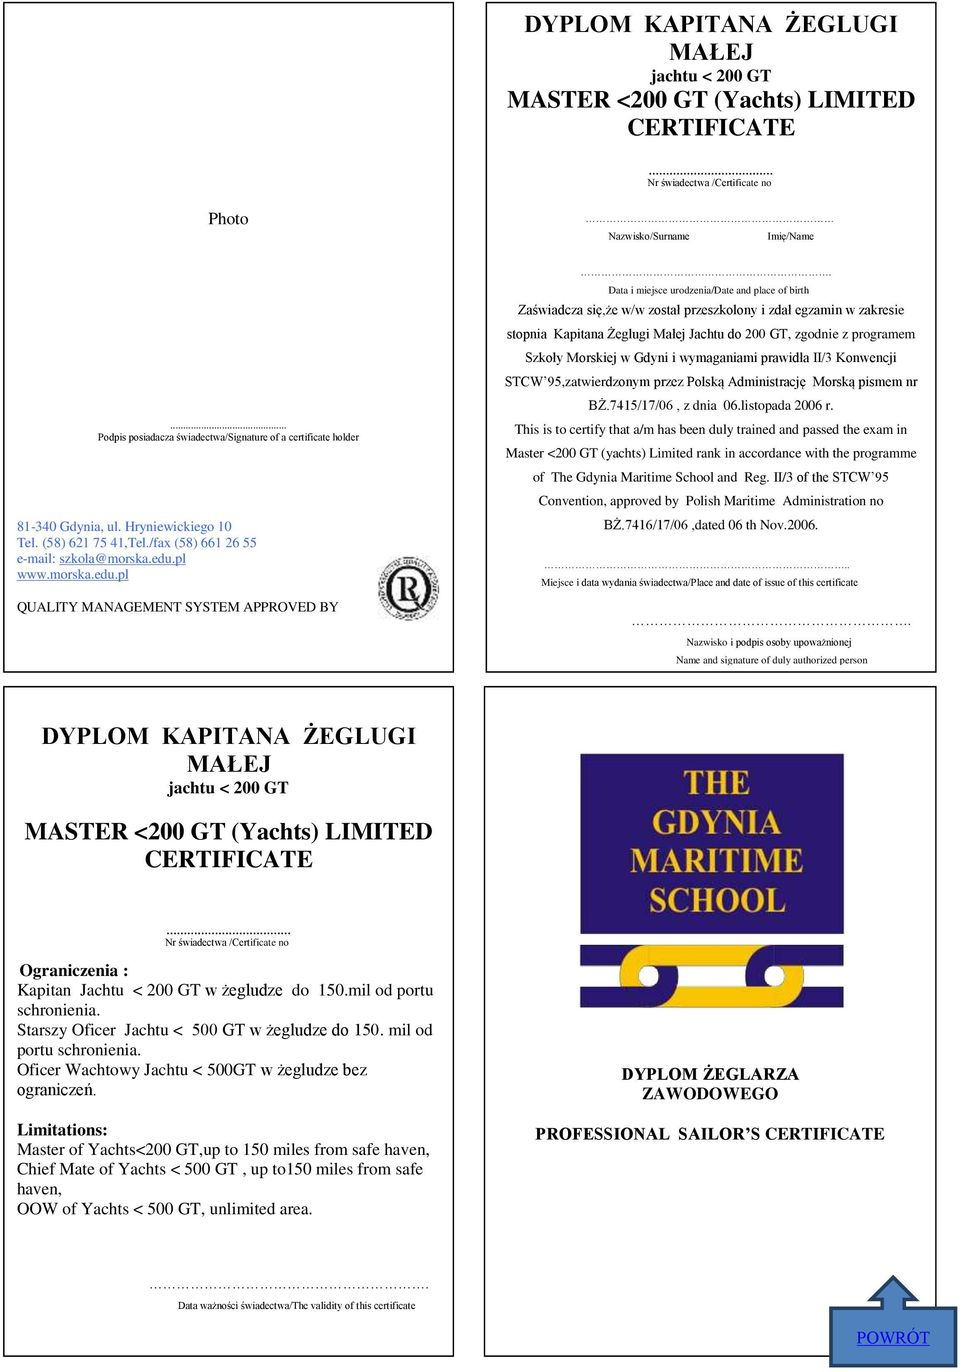 Master <200 GT (yachts) Limited rank in accordance with the programme of The Gdynia Maritime School and Reg. II/3 of the STCW 95 Convention, approved by Polish Maritime Administration no BŻ.